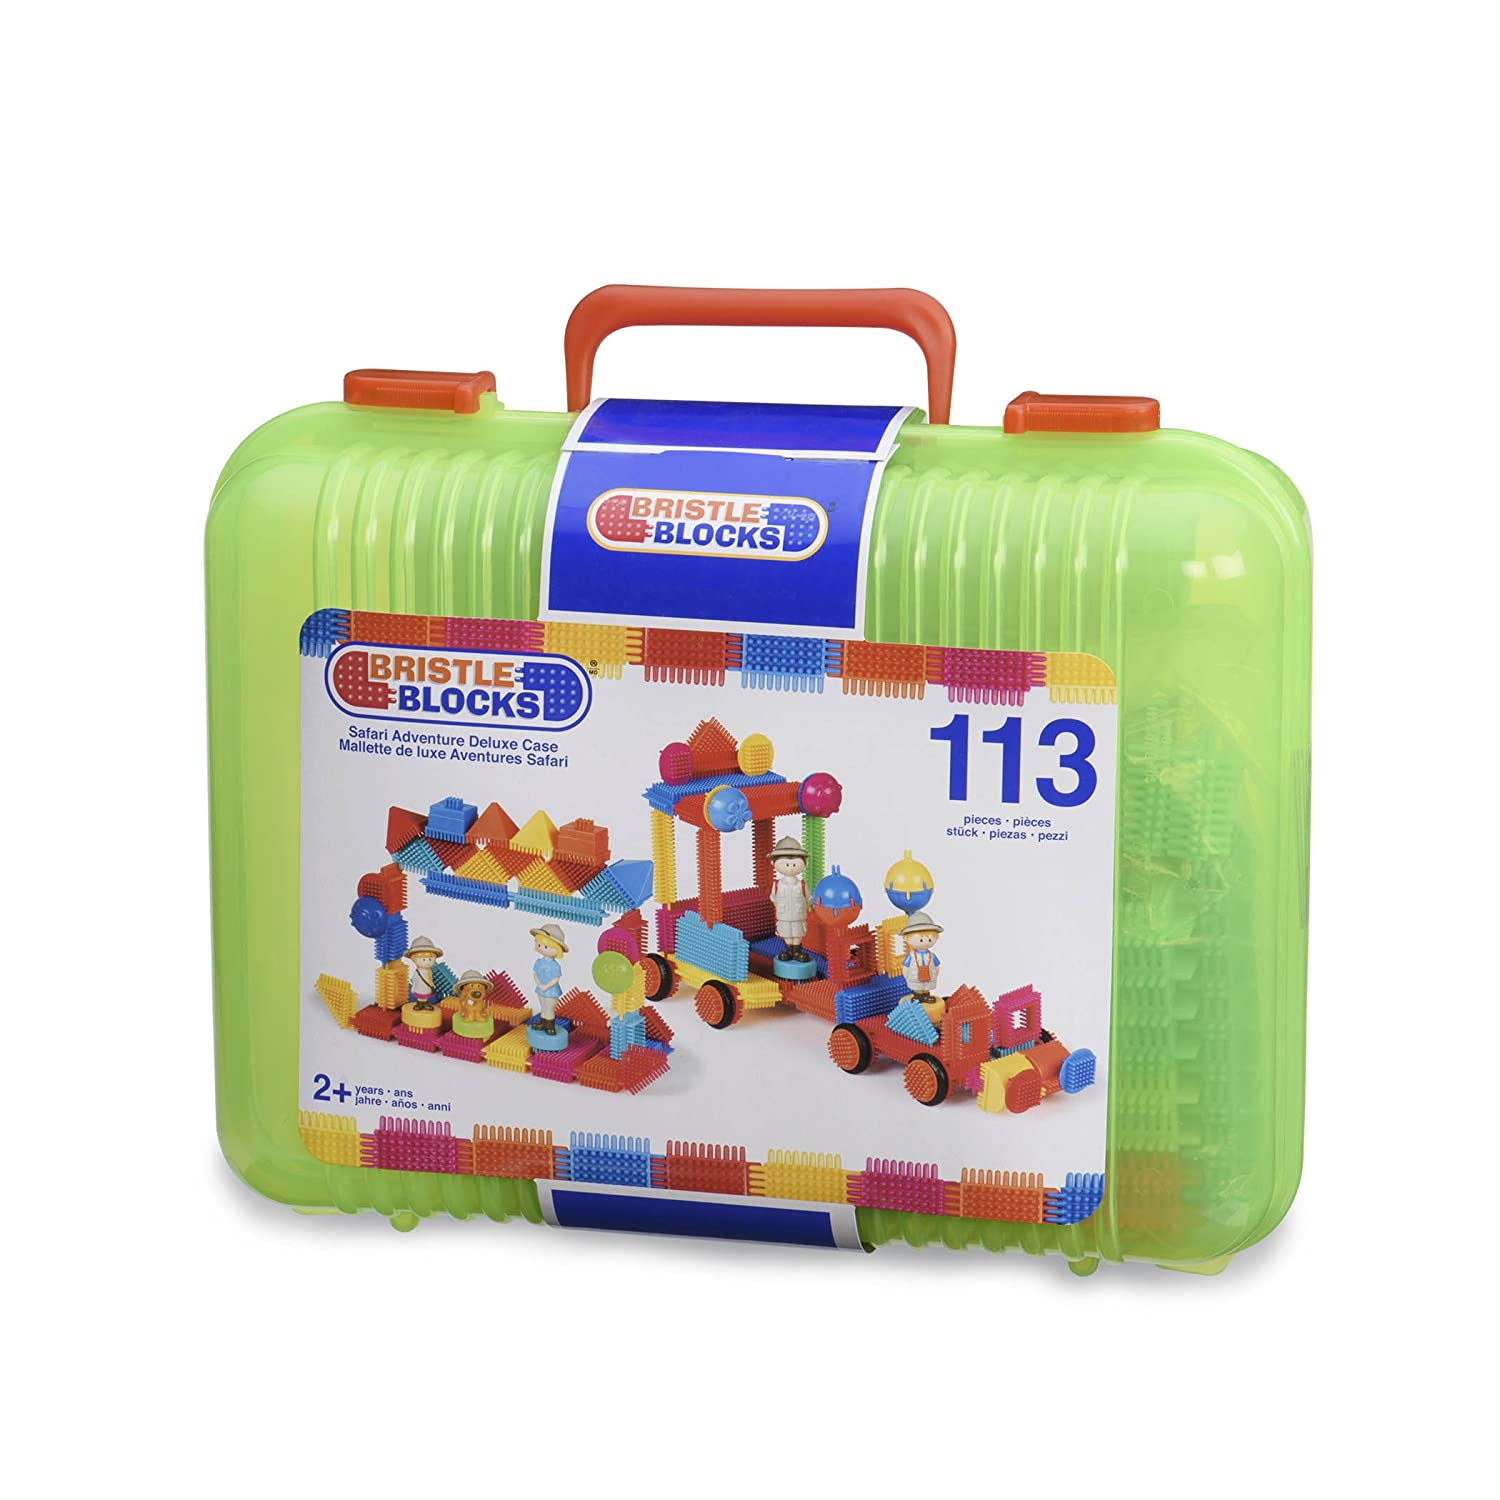 BRISTLE BLOCKS By BATTAT The Official 128 Pieces in a Bucket – Creativity Building Toys for Dexterity and Fine Motricity – BPA Free 2 Years Branford LTD 3088Z